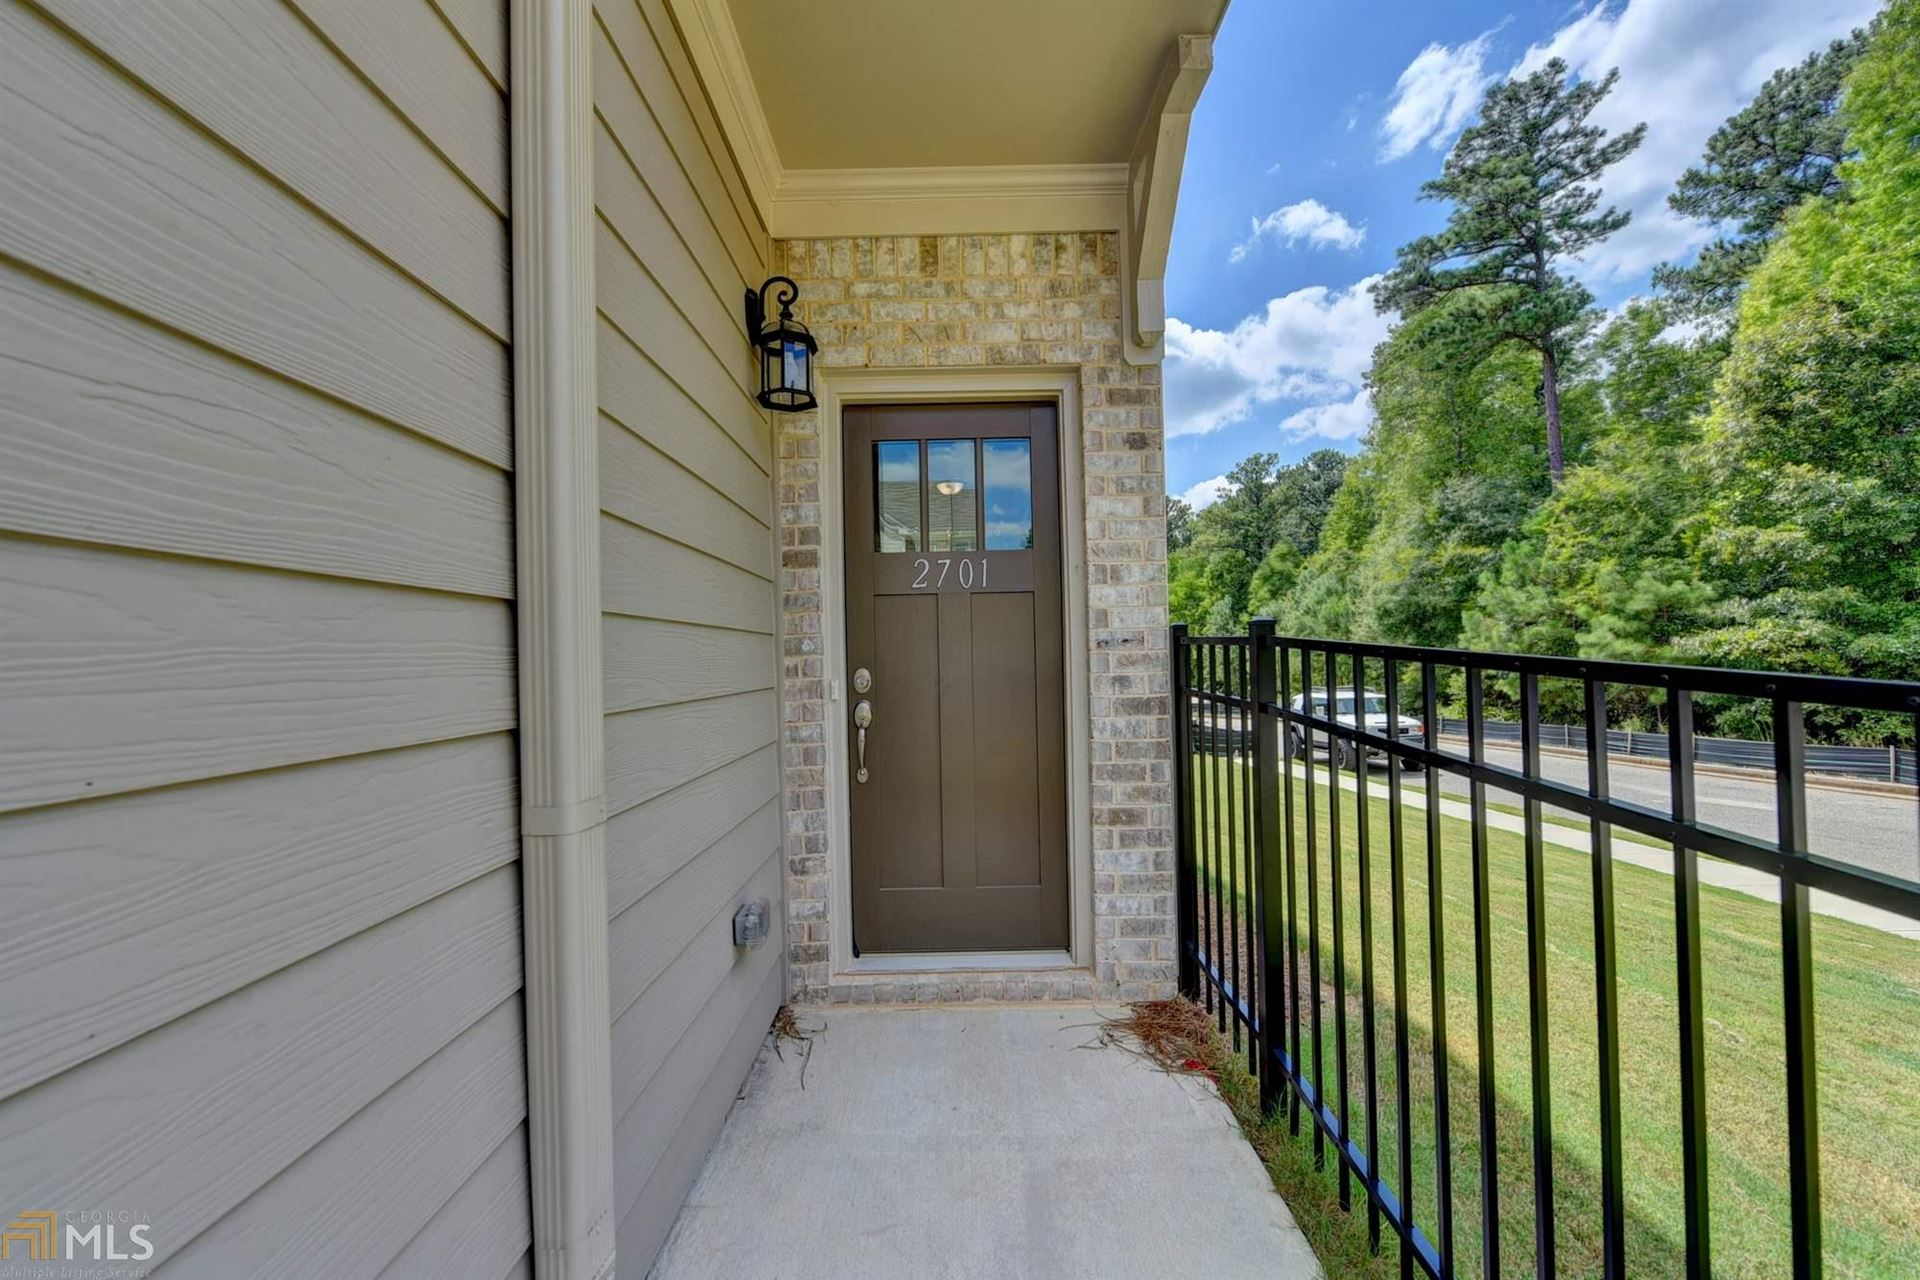 5402 Brooklands Dr, Lithonia, GA 30058 - MLS#: 8870833